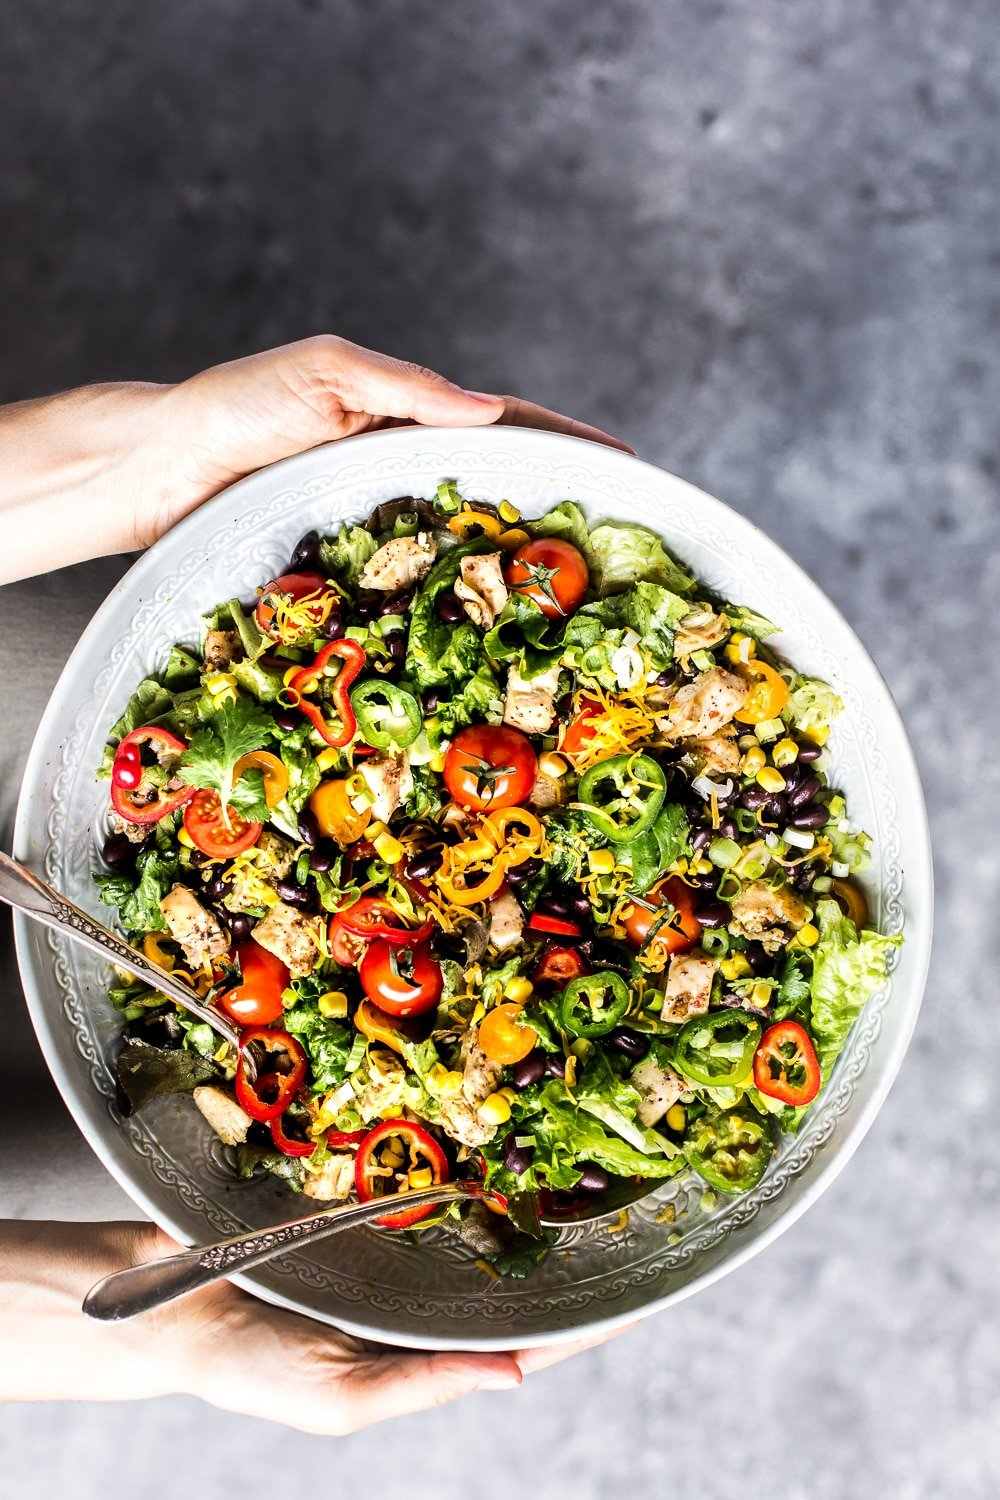 Healthyish Savory Recipes for the Game Day: A woman is photographed from the top view as she is about to serve a big bolw of Southwestern Chicken Salad with Creamy Avocadp Dressing